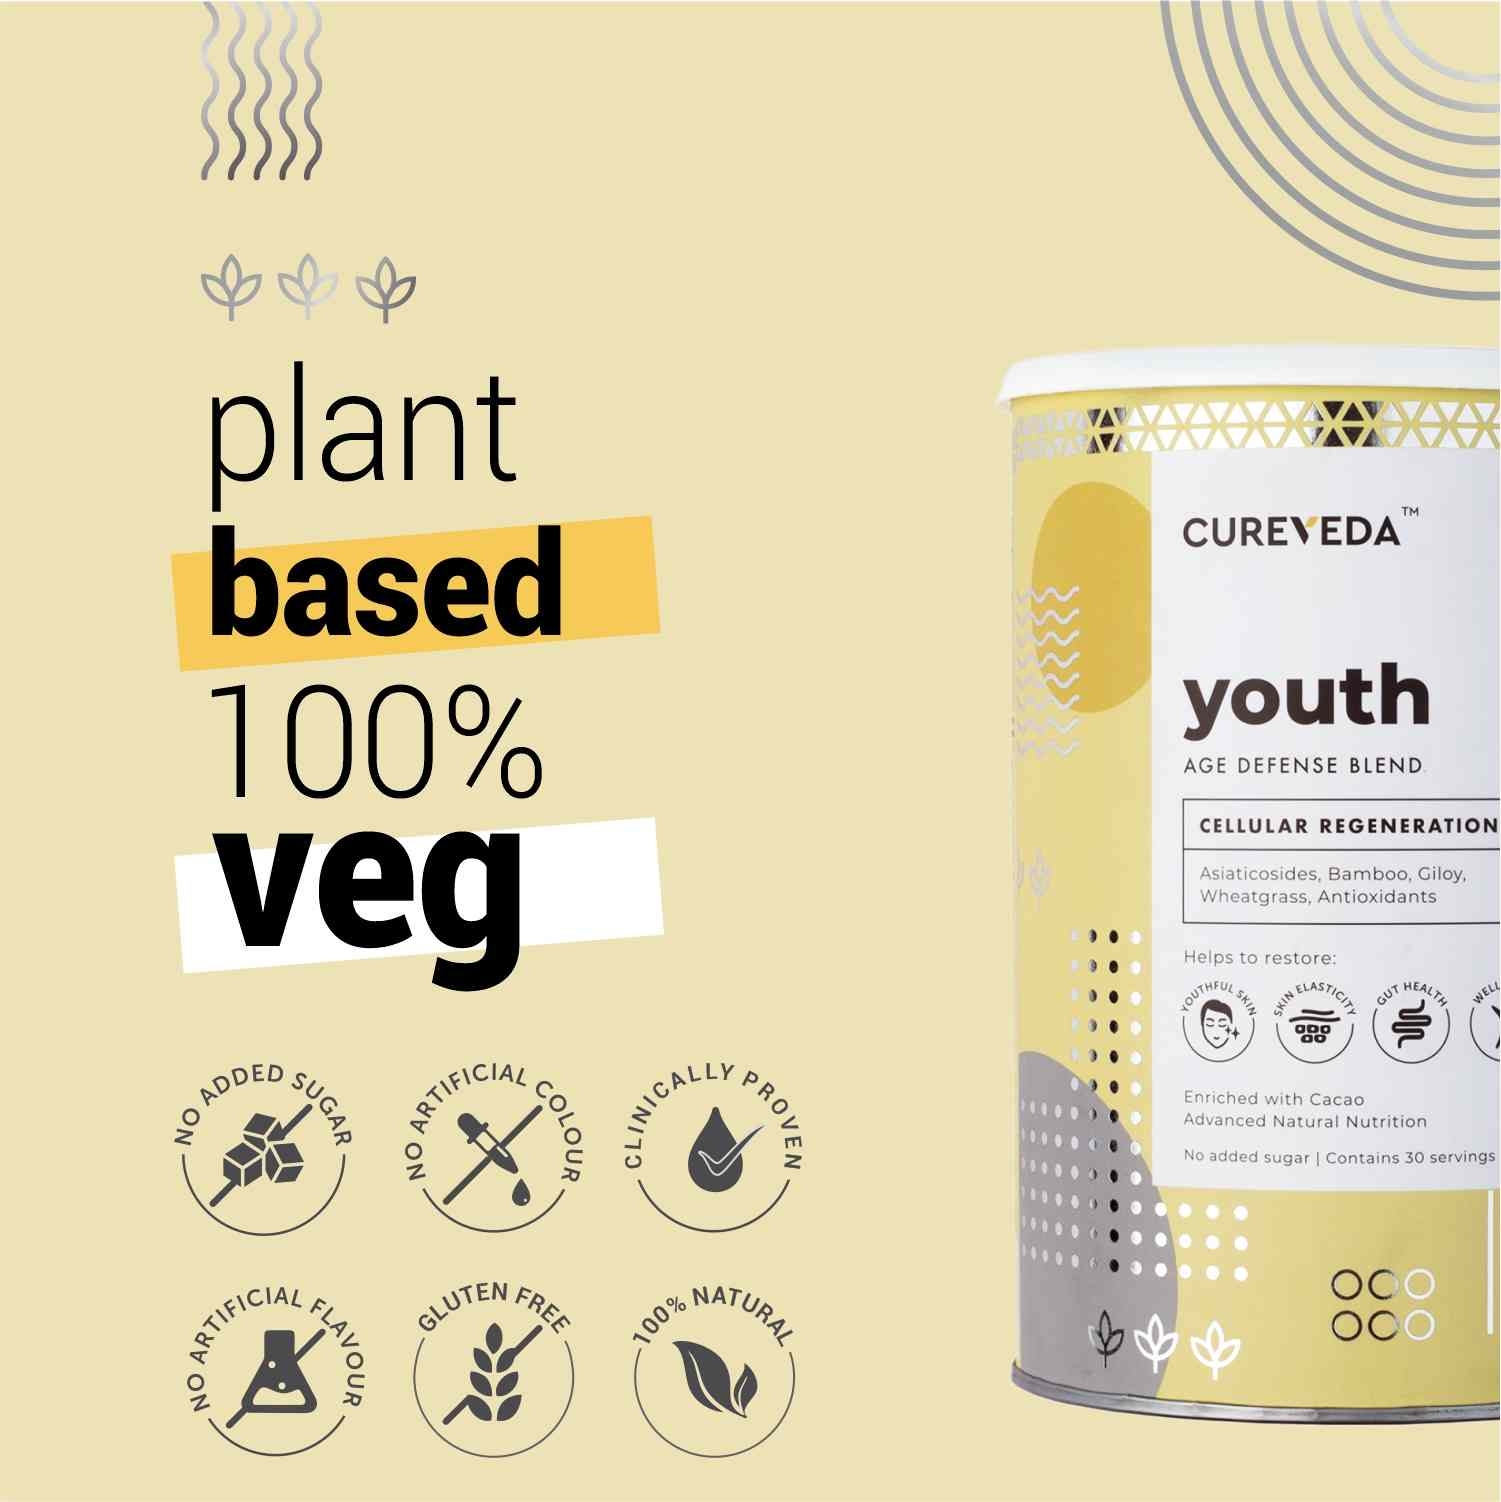 https://curevedaprod.imgix.net/h/t/httpscureveda.comwp-contentuploads202001youth-plant-based-card-.jpg